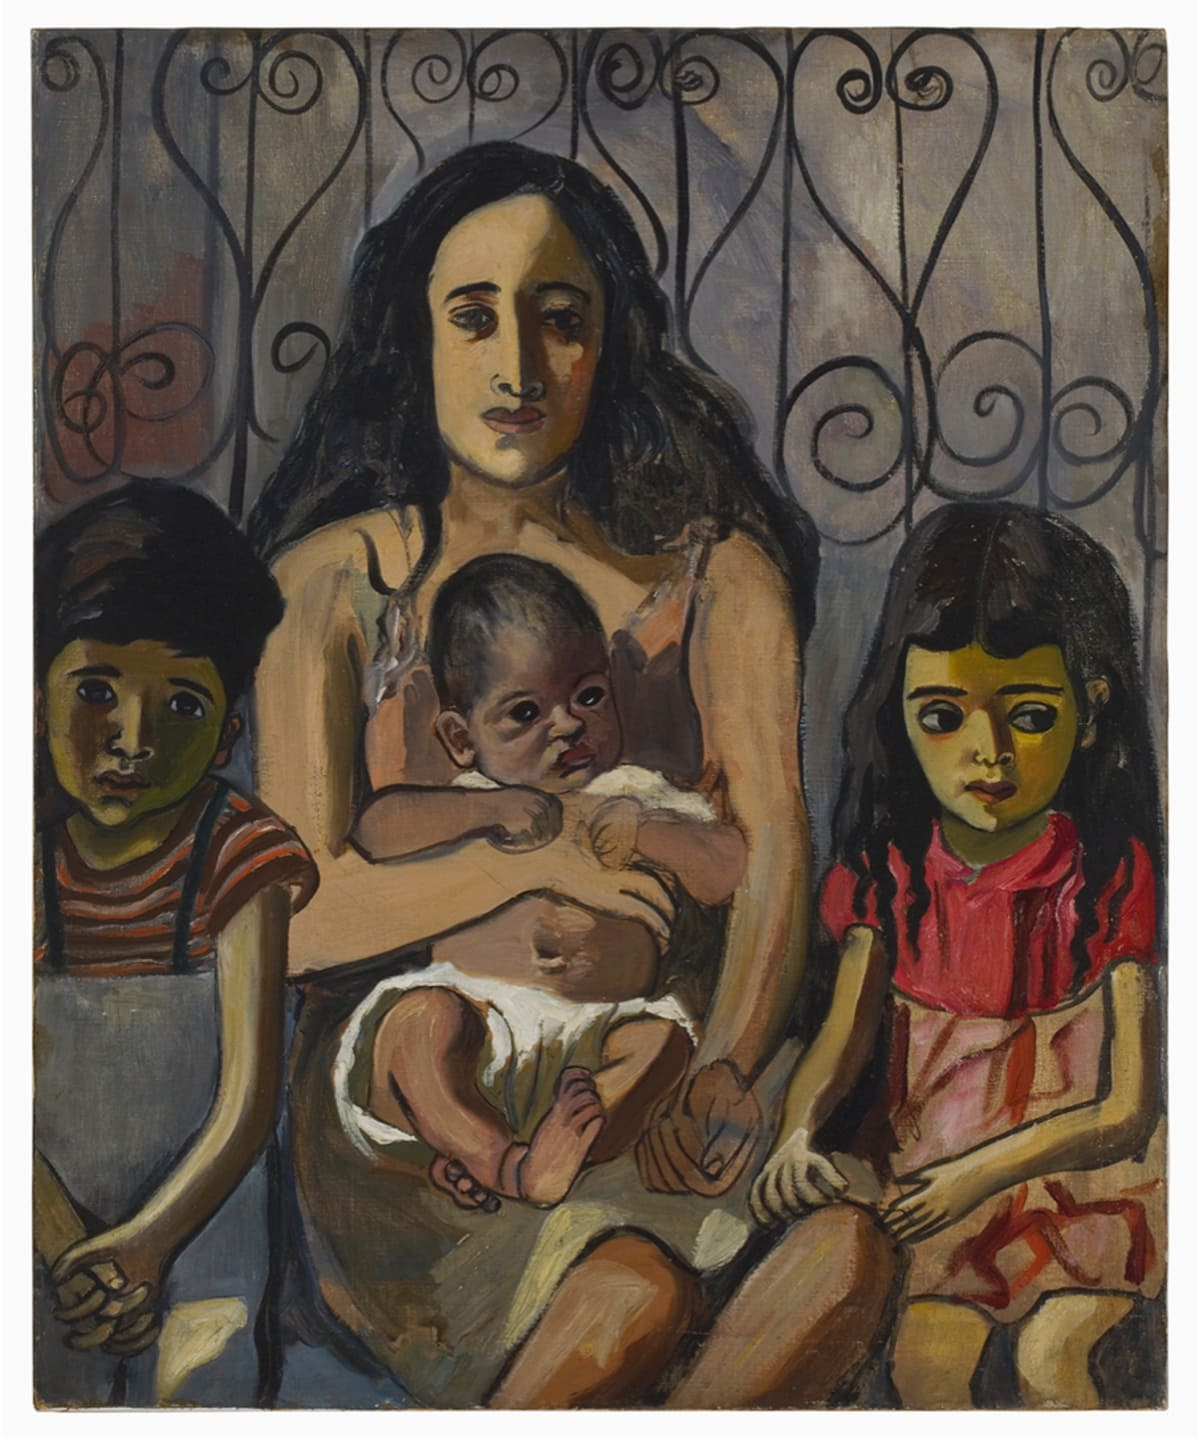 The Spanish Family (1943)